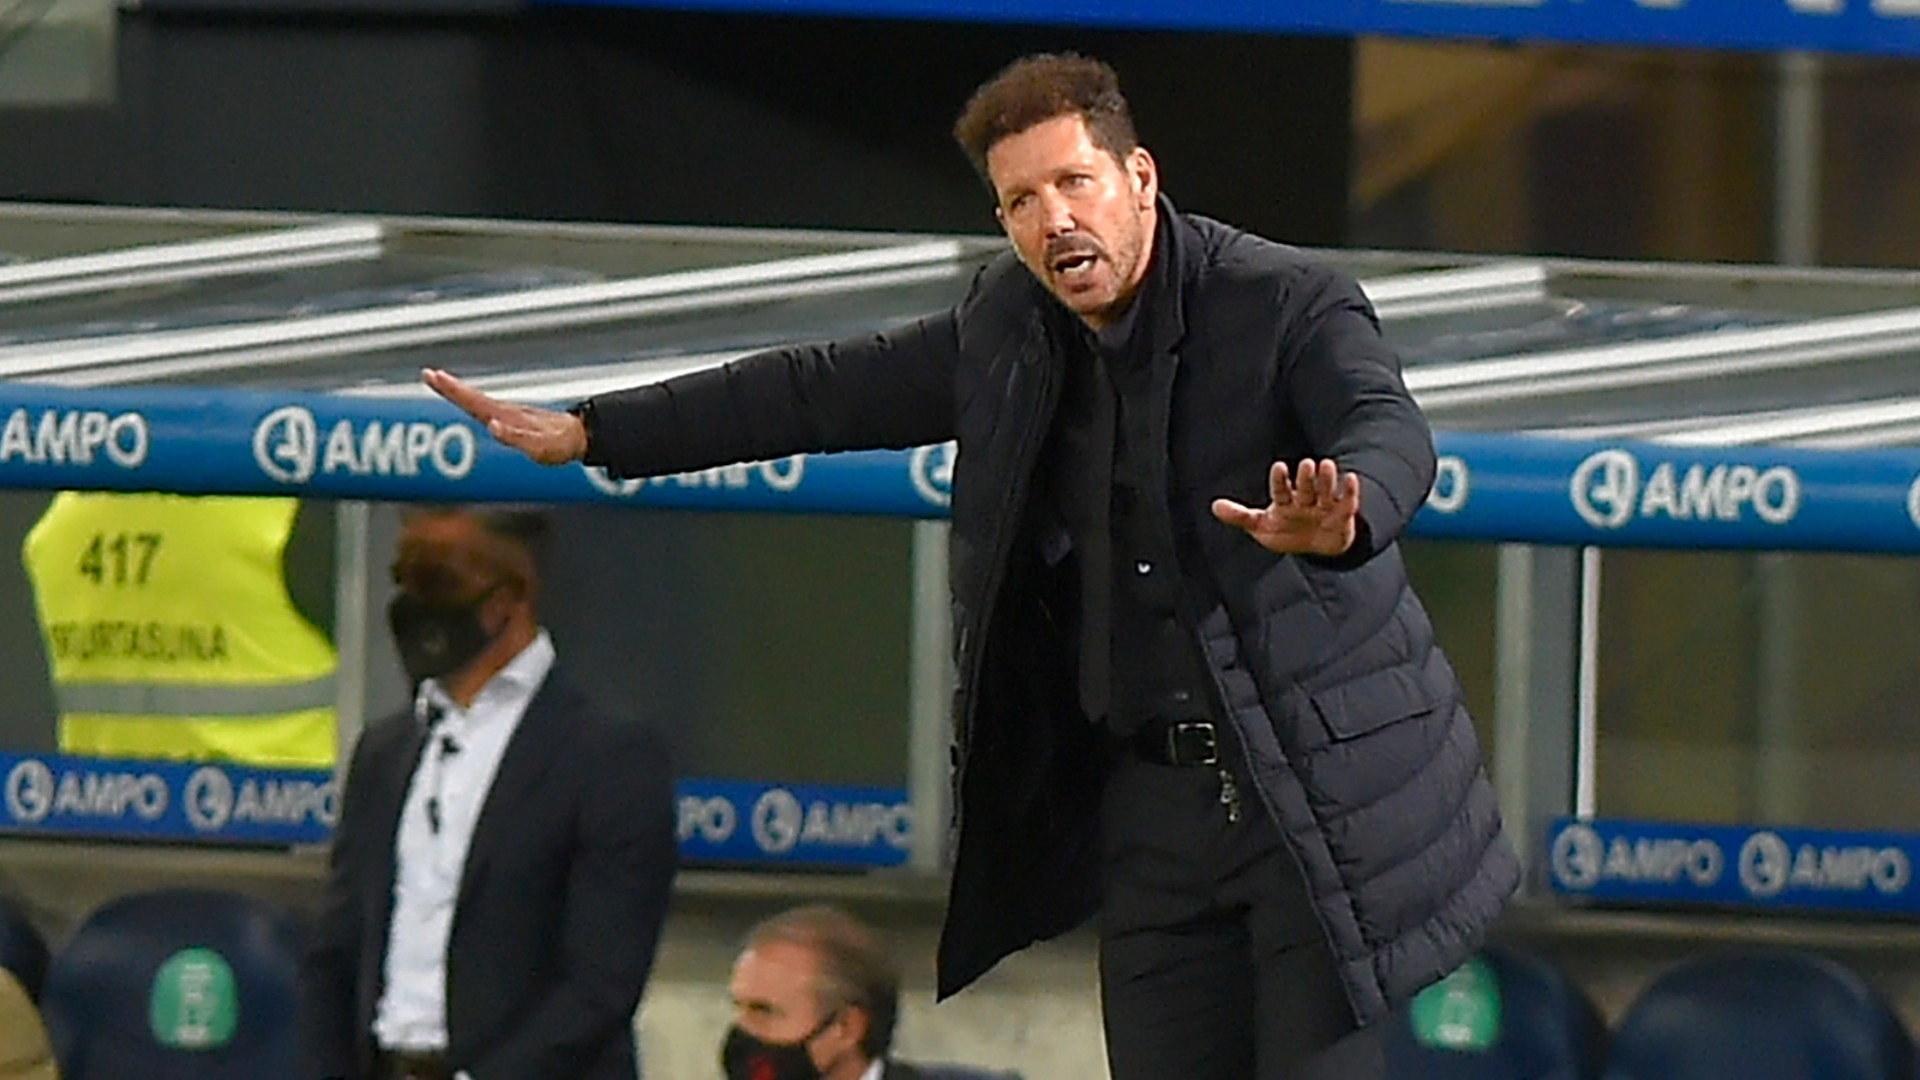 Simeone grateful but not arrogant after reaching 300 wins: 'They could kick me out tomorrow!'